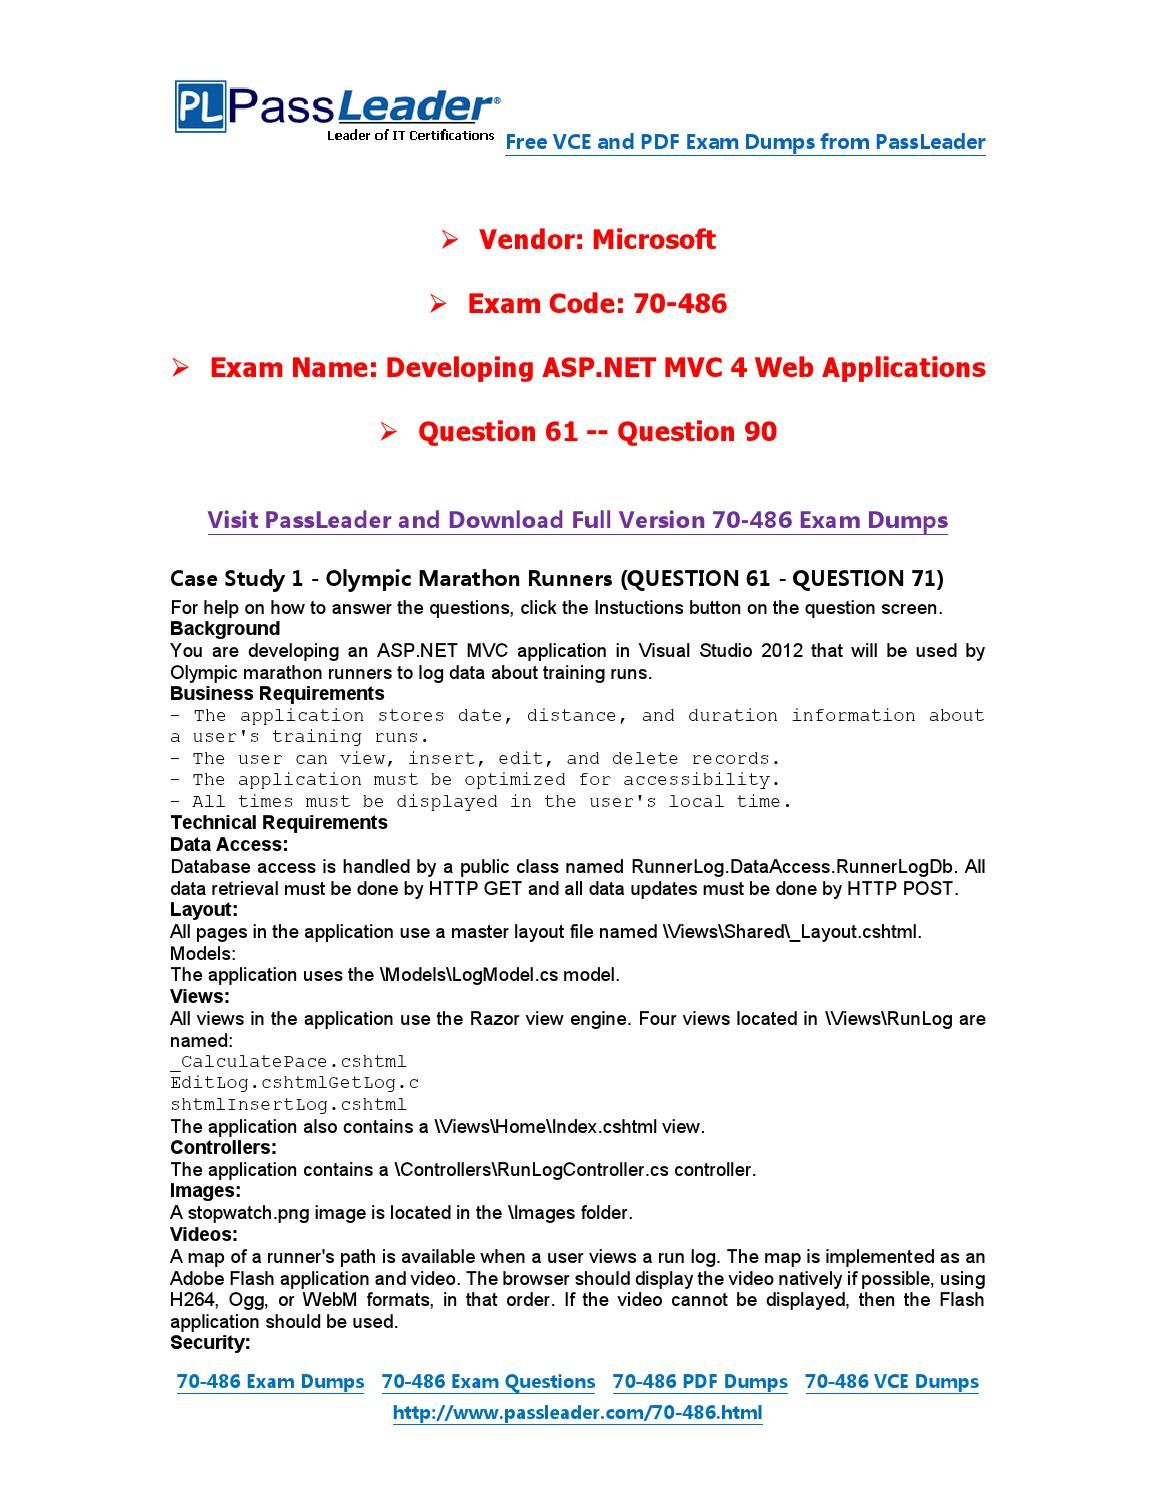 70 486 exam dumps with pdf and vce download 121 end 70 486 70 486 exam dumps with pdf and vce download 121 end 70 486 exam dumps with pdf and vce download pinterest xflitez Image collections